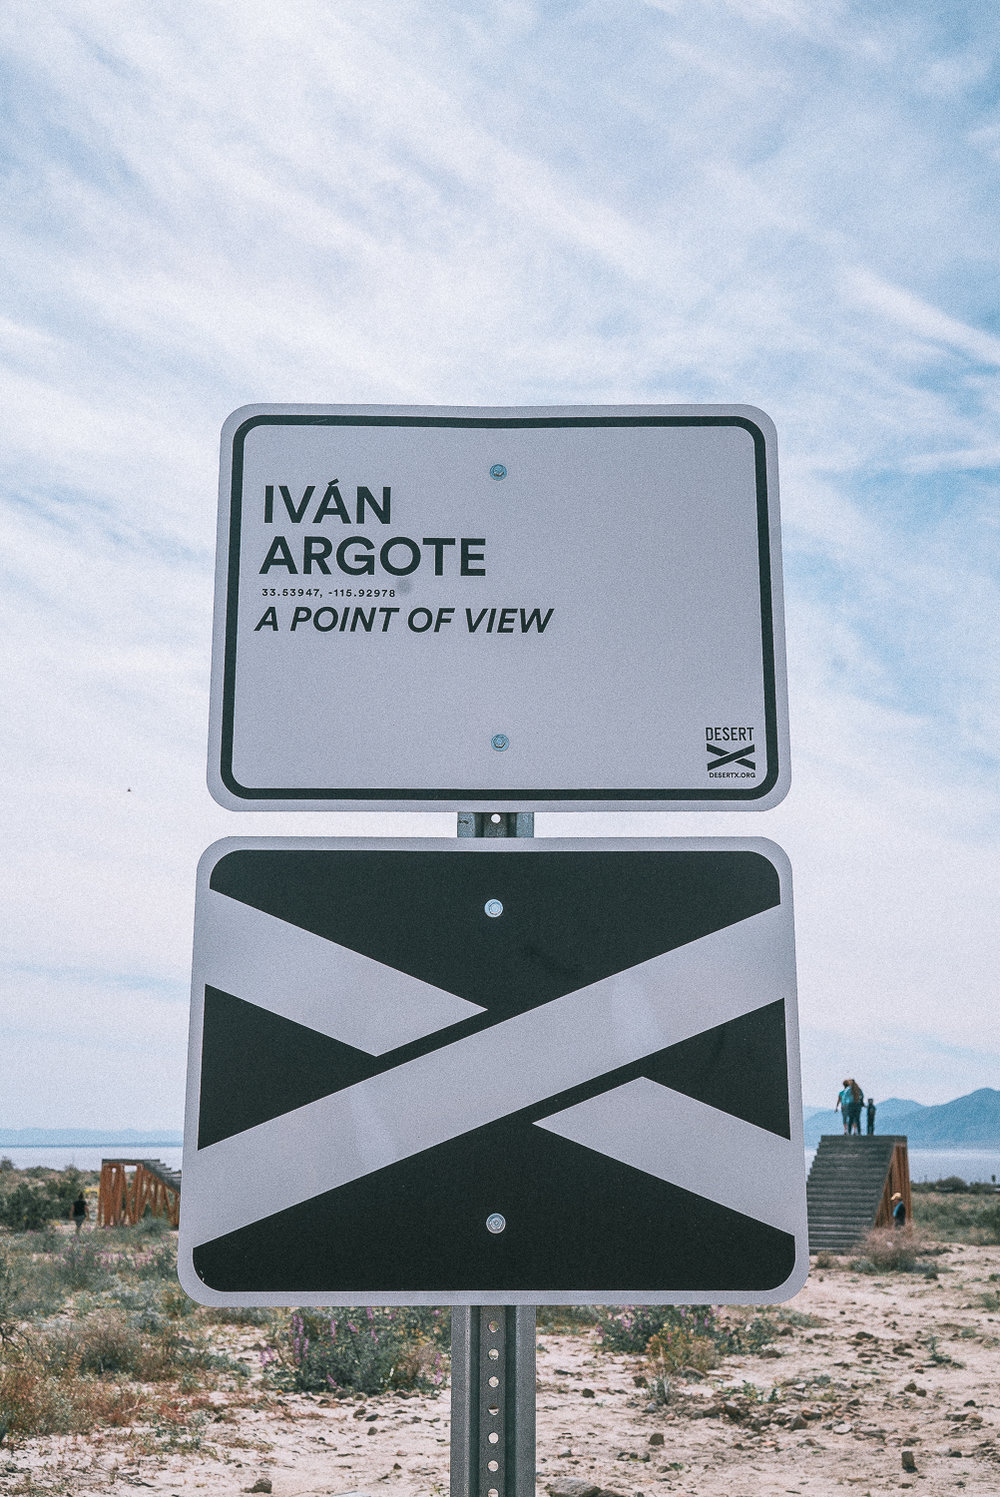 A Point of View - Iván Argote